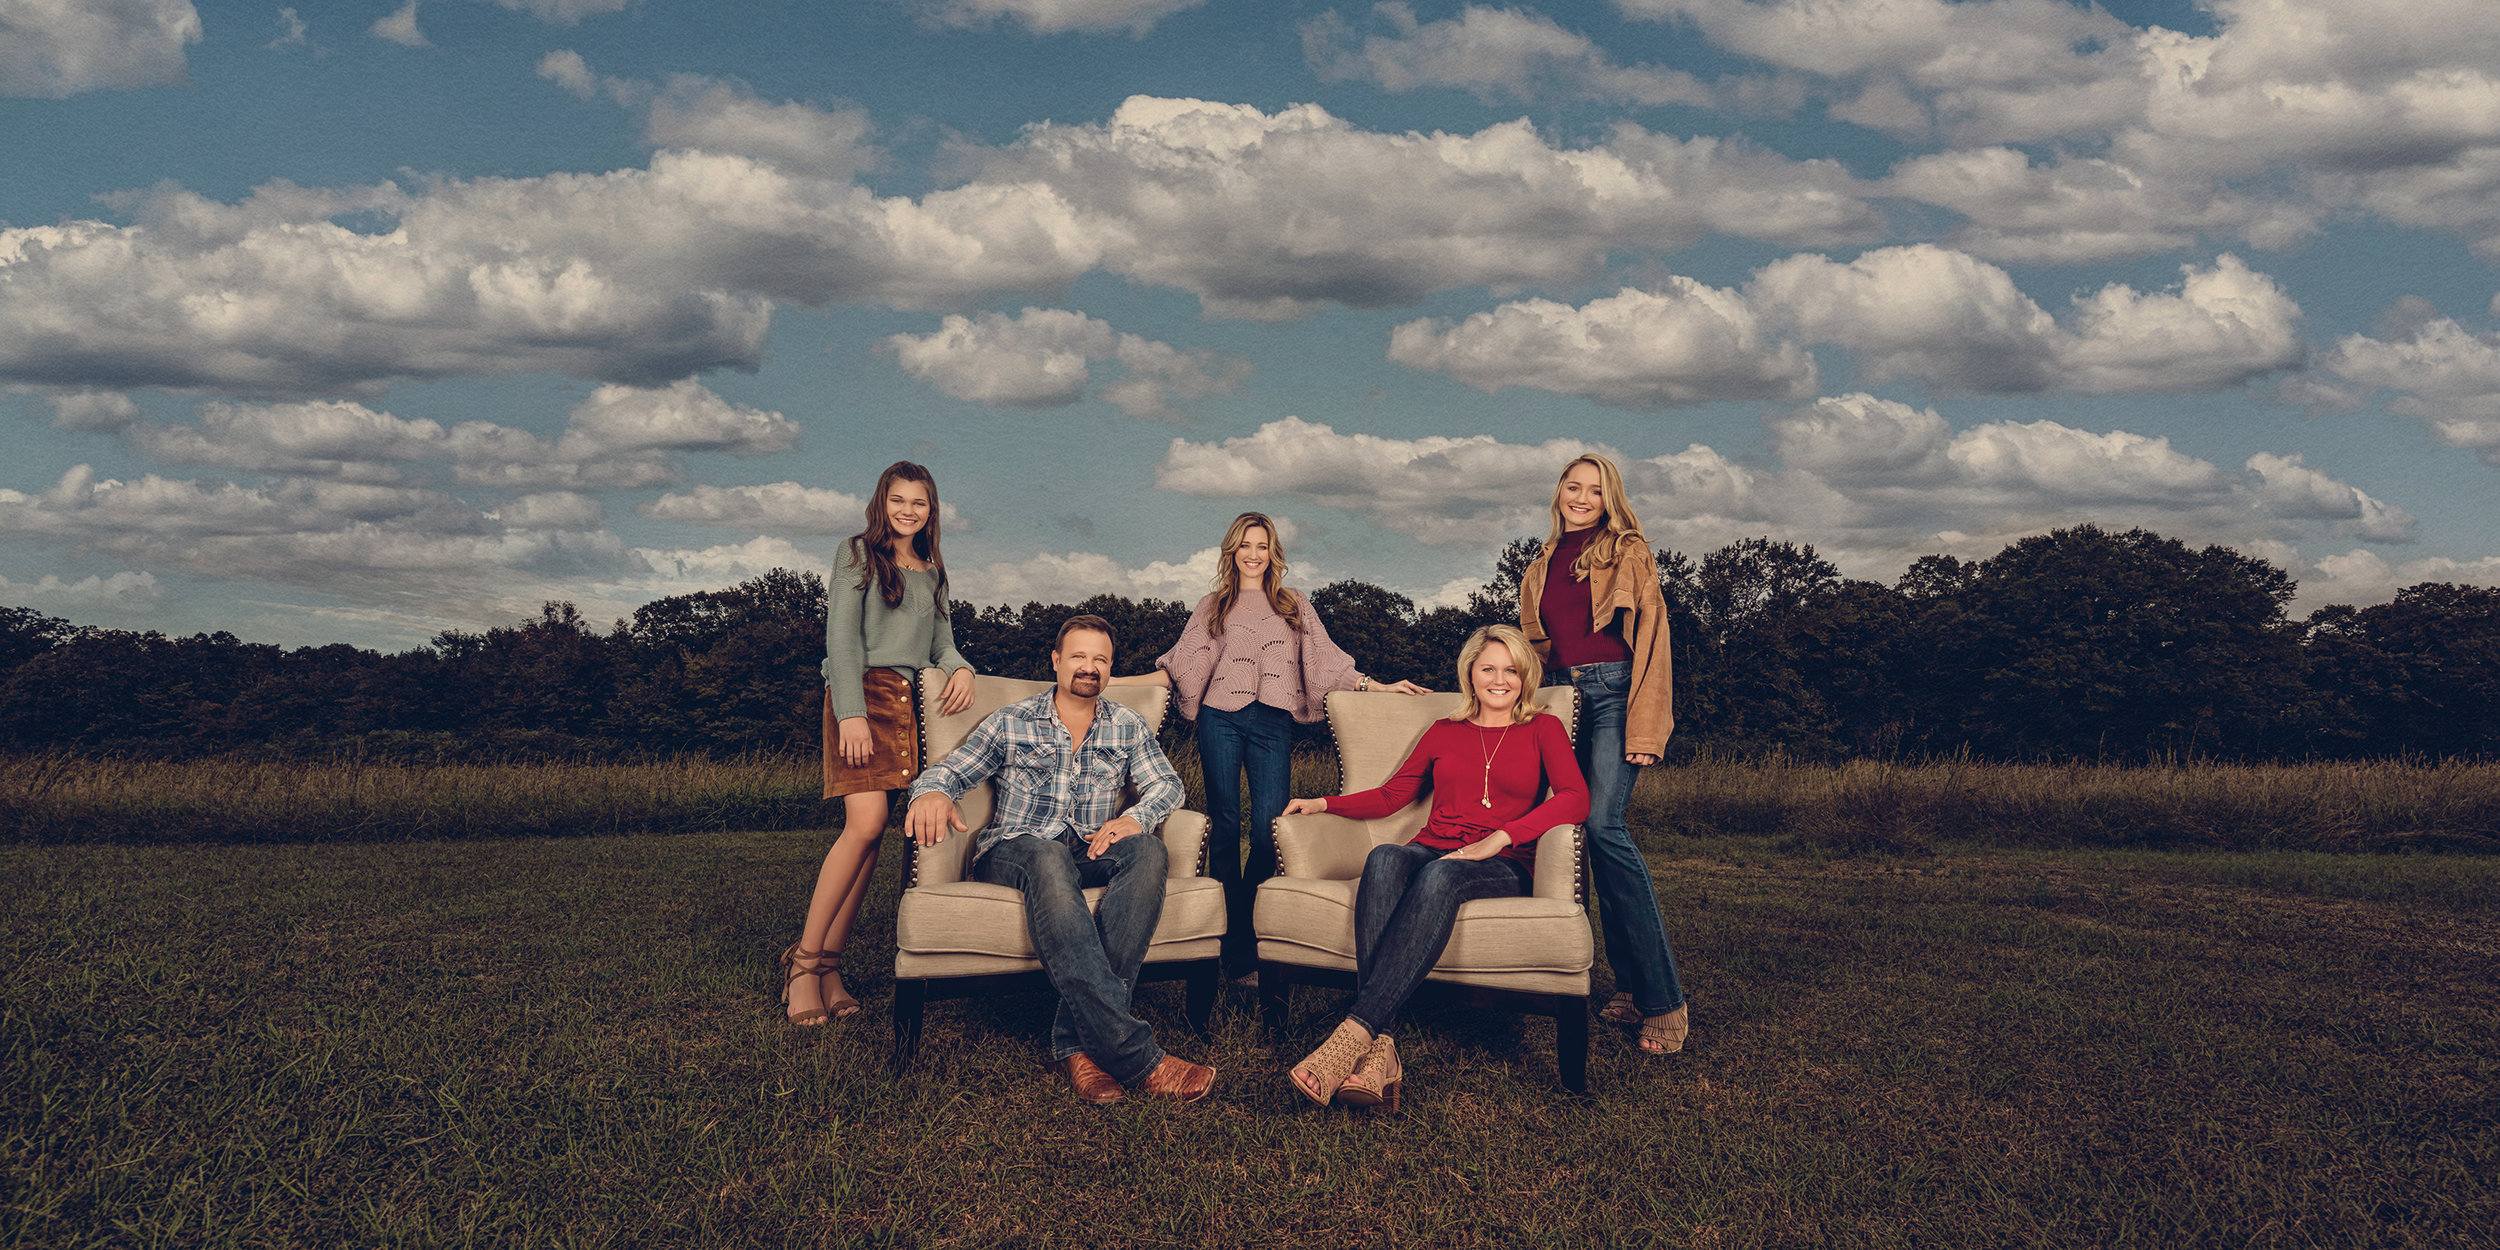 Family-pictures-cabot-arkansas-jodie-kelly.jpg